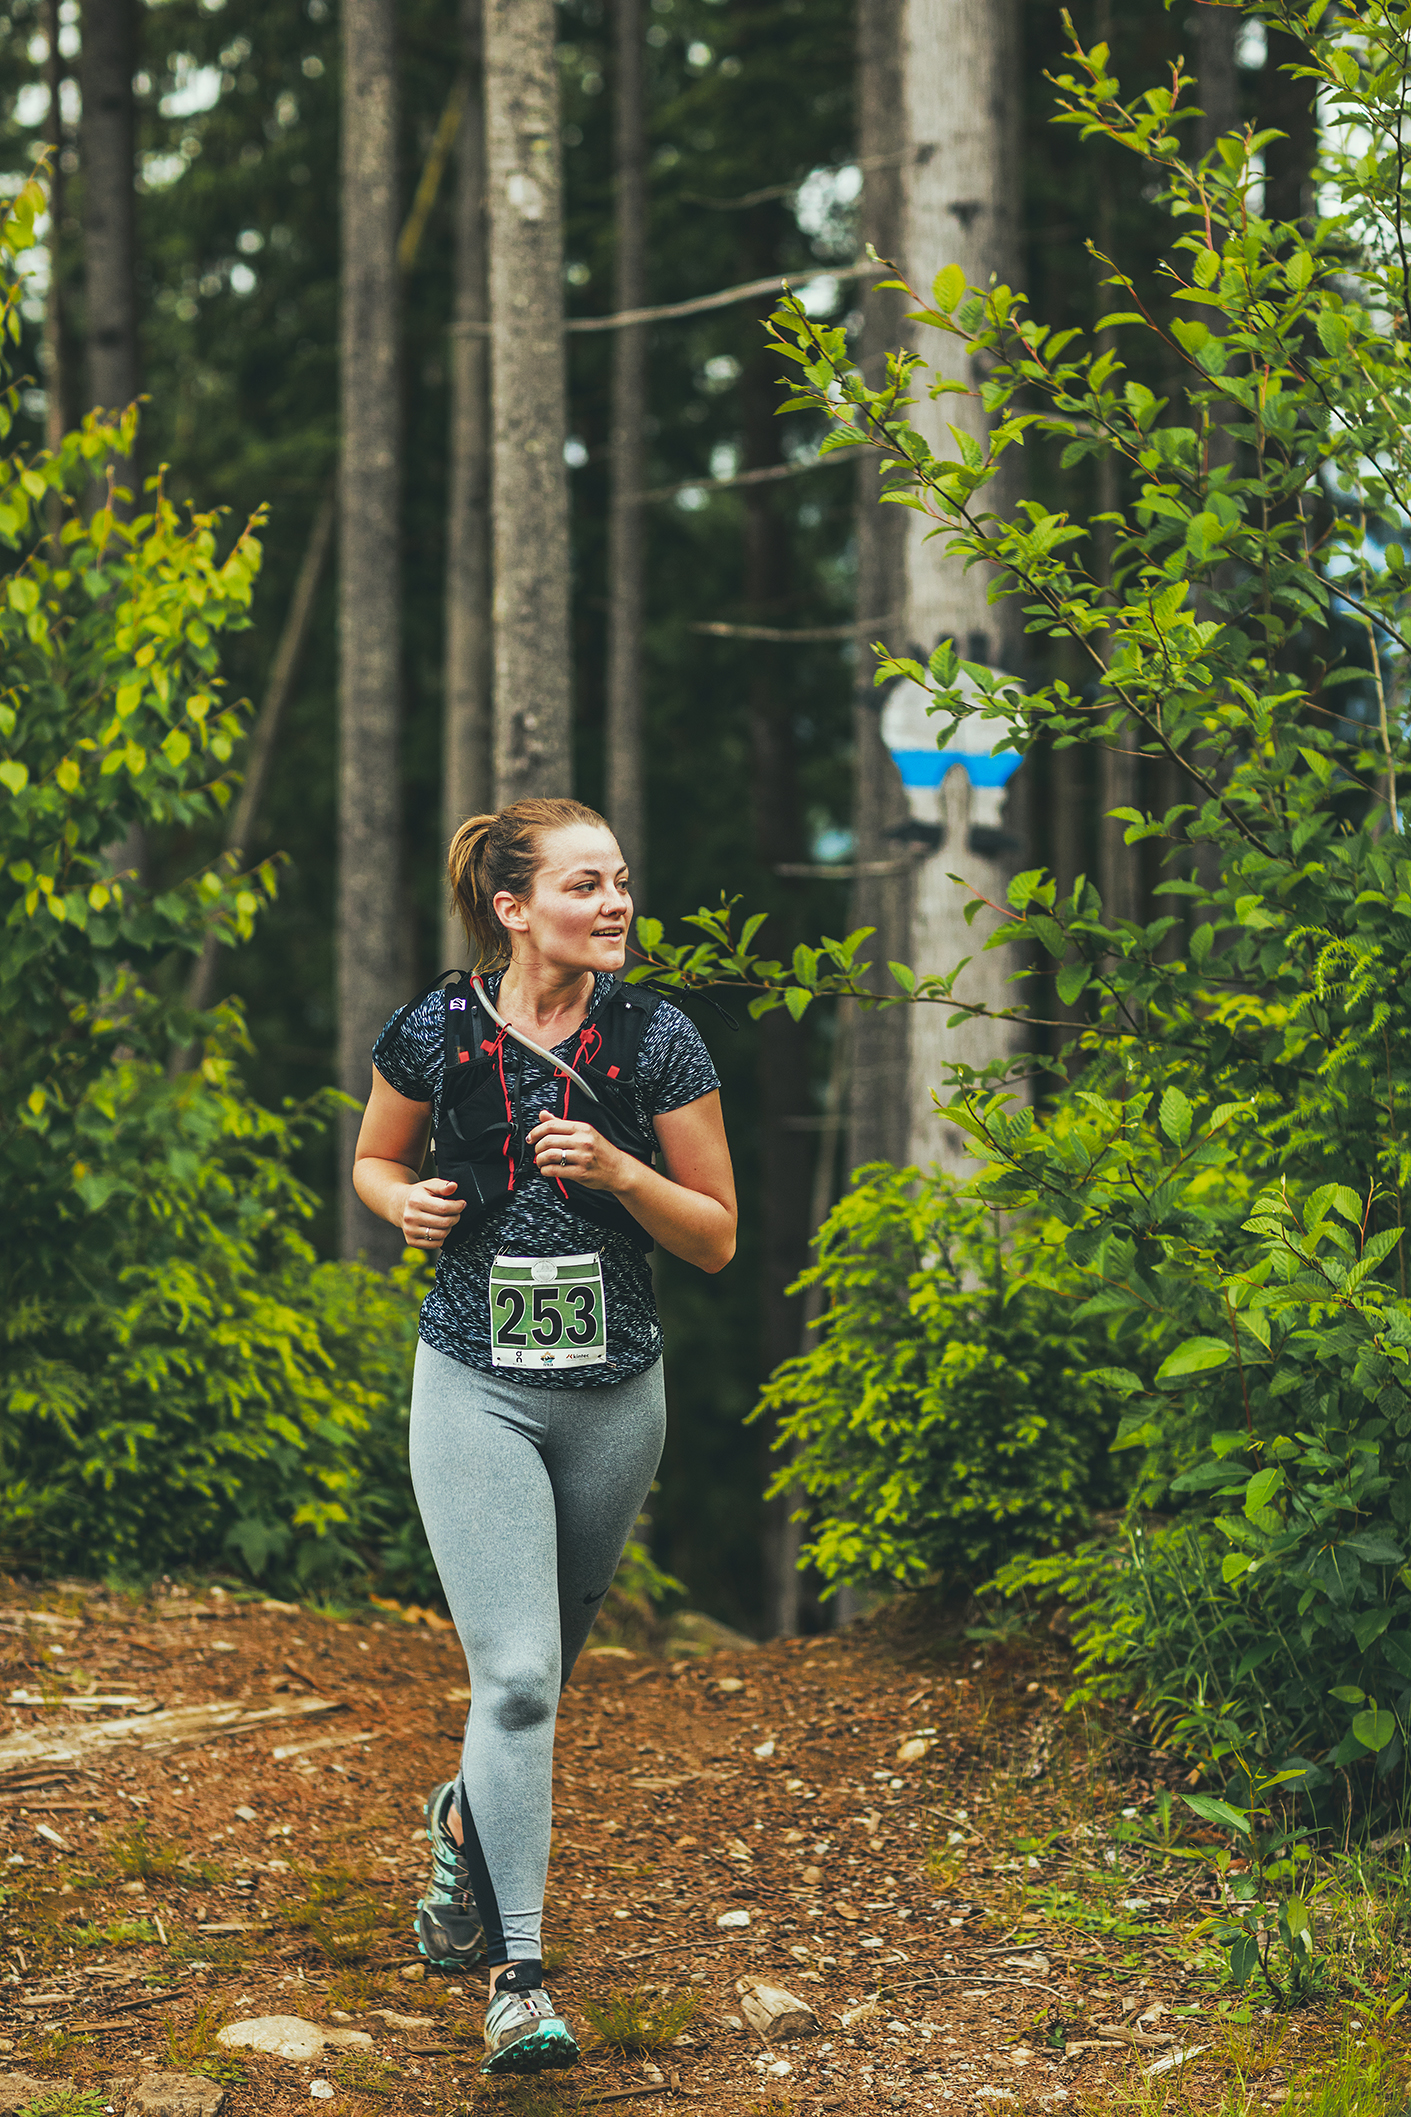 Fraser Valley Trail Races - Bear Mountain - IMG_1715 by Brice Ferre Studio - Vancouver Portrait Adventure and Athlete Photographer.jpg